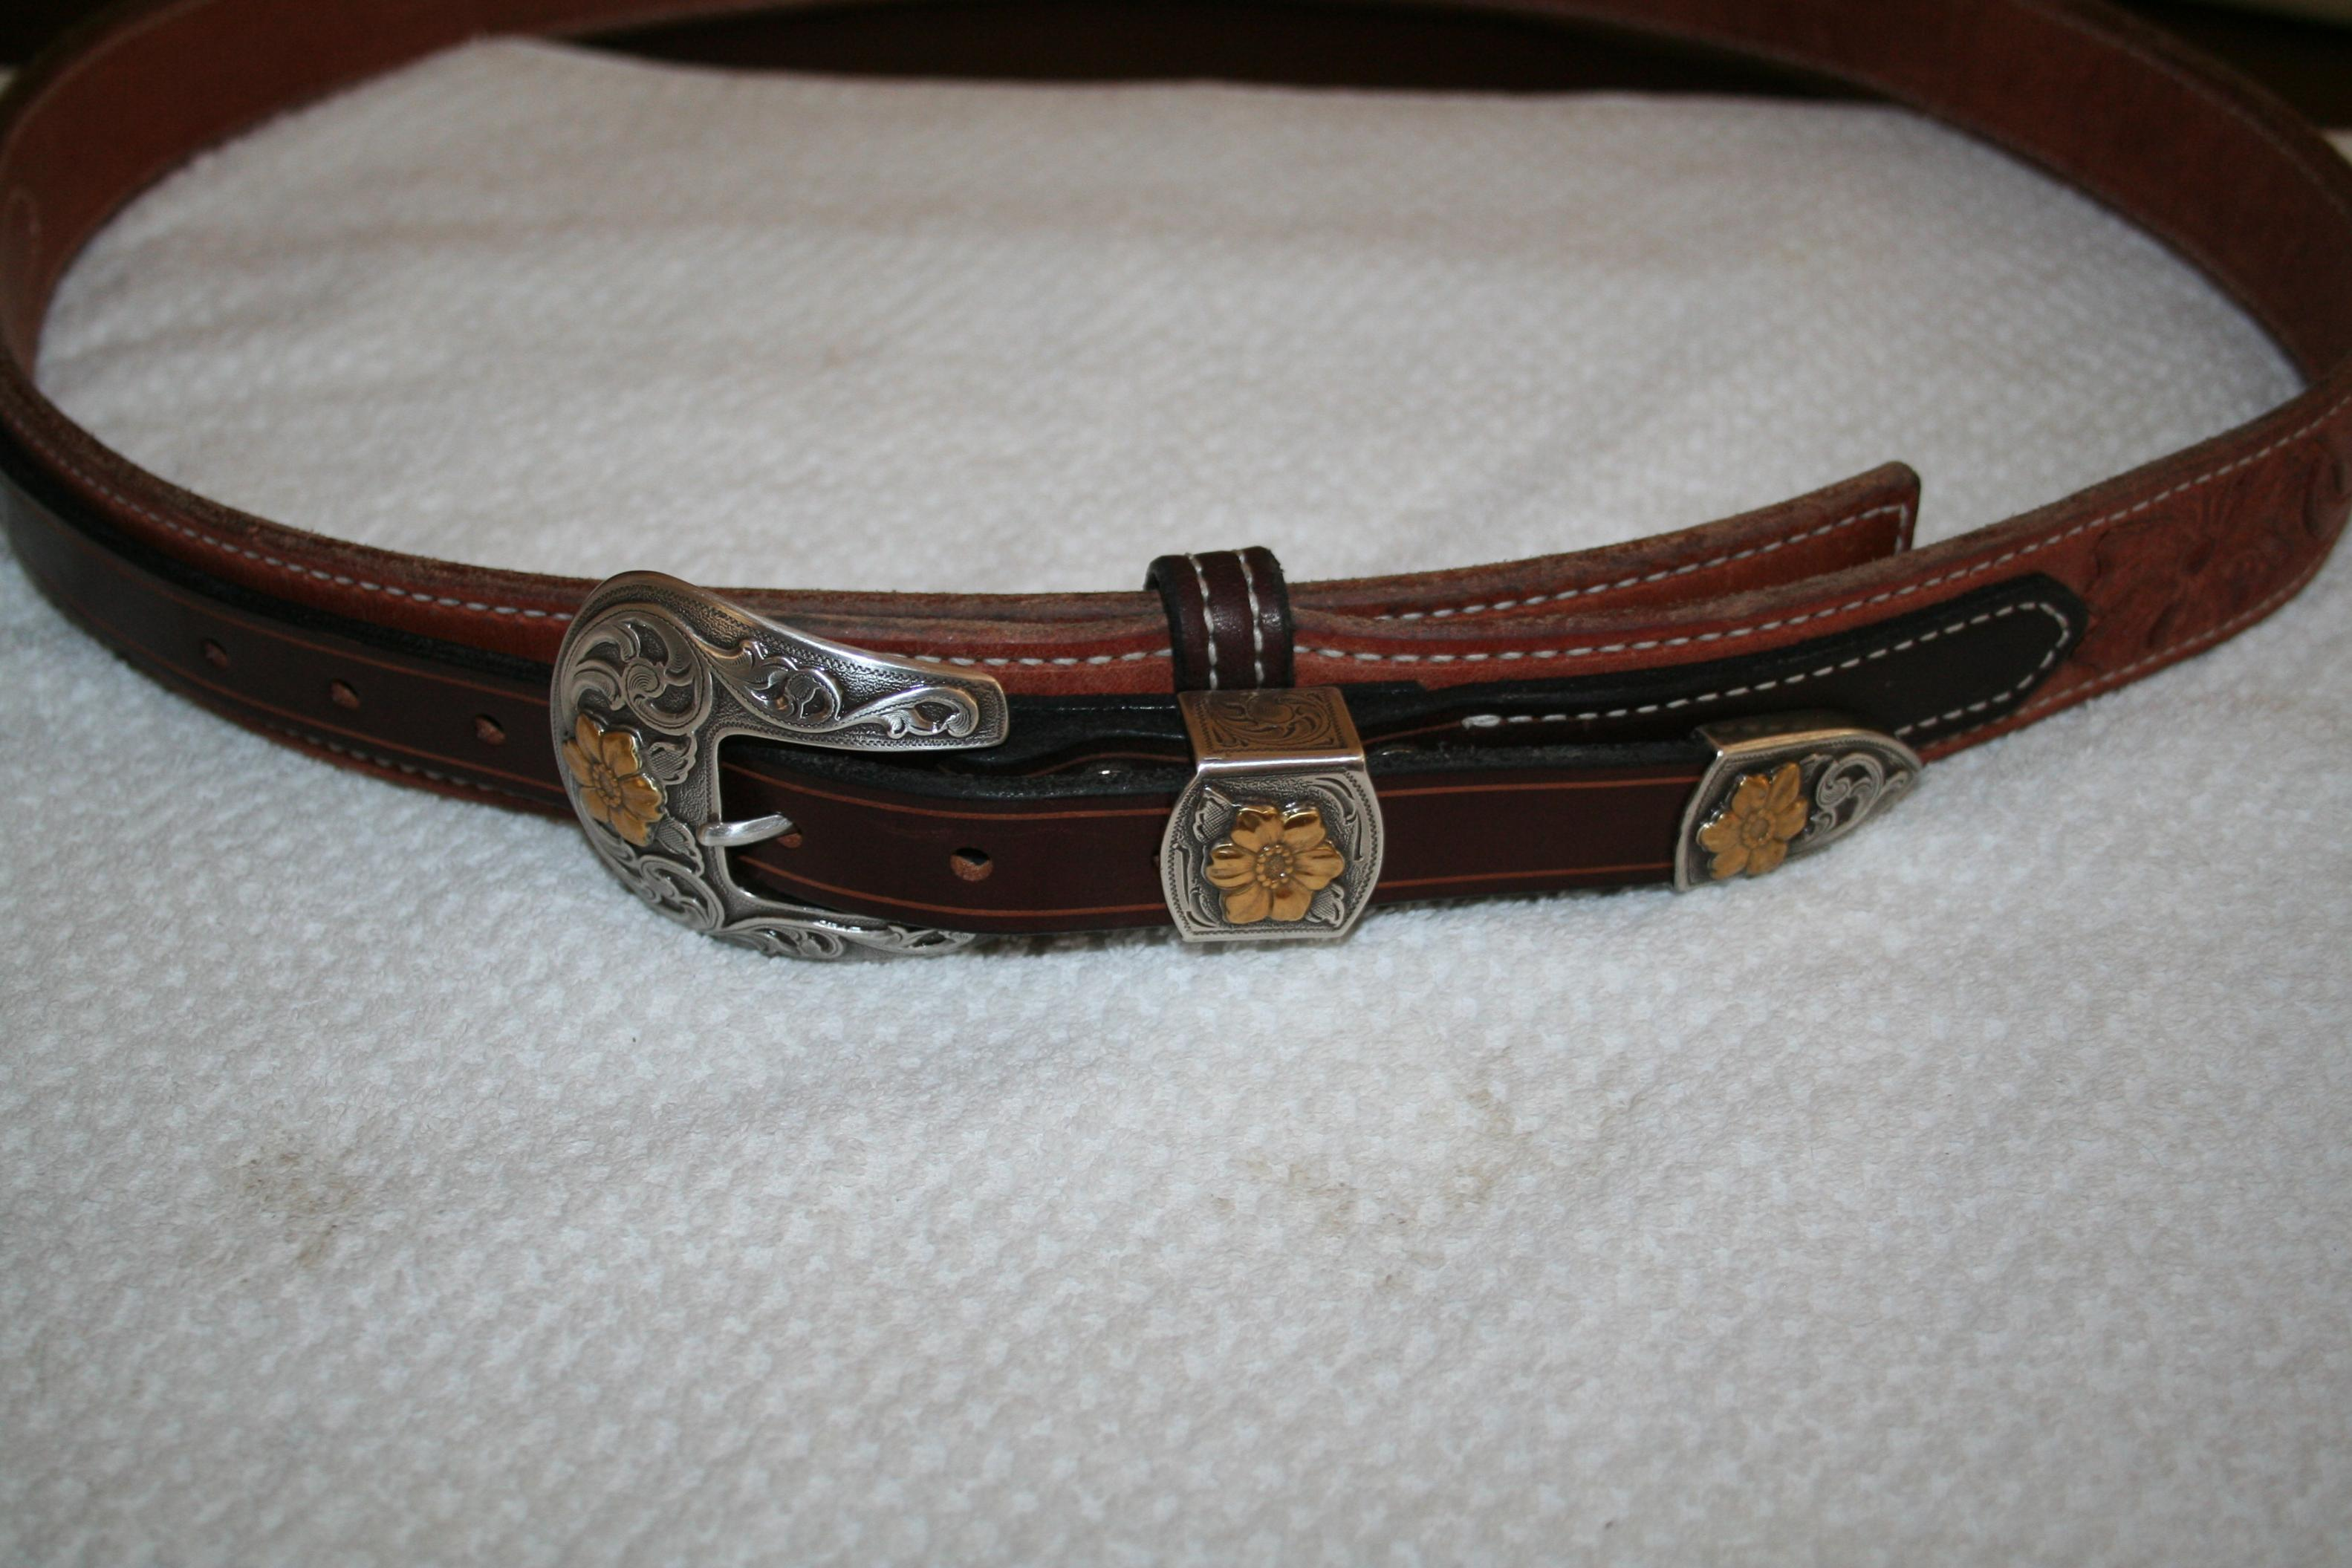 Jack Russell Leather - any opinions-img_3268.jpg